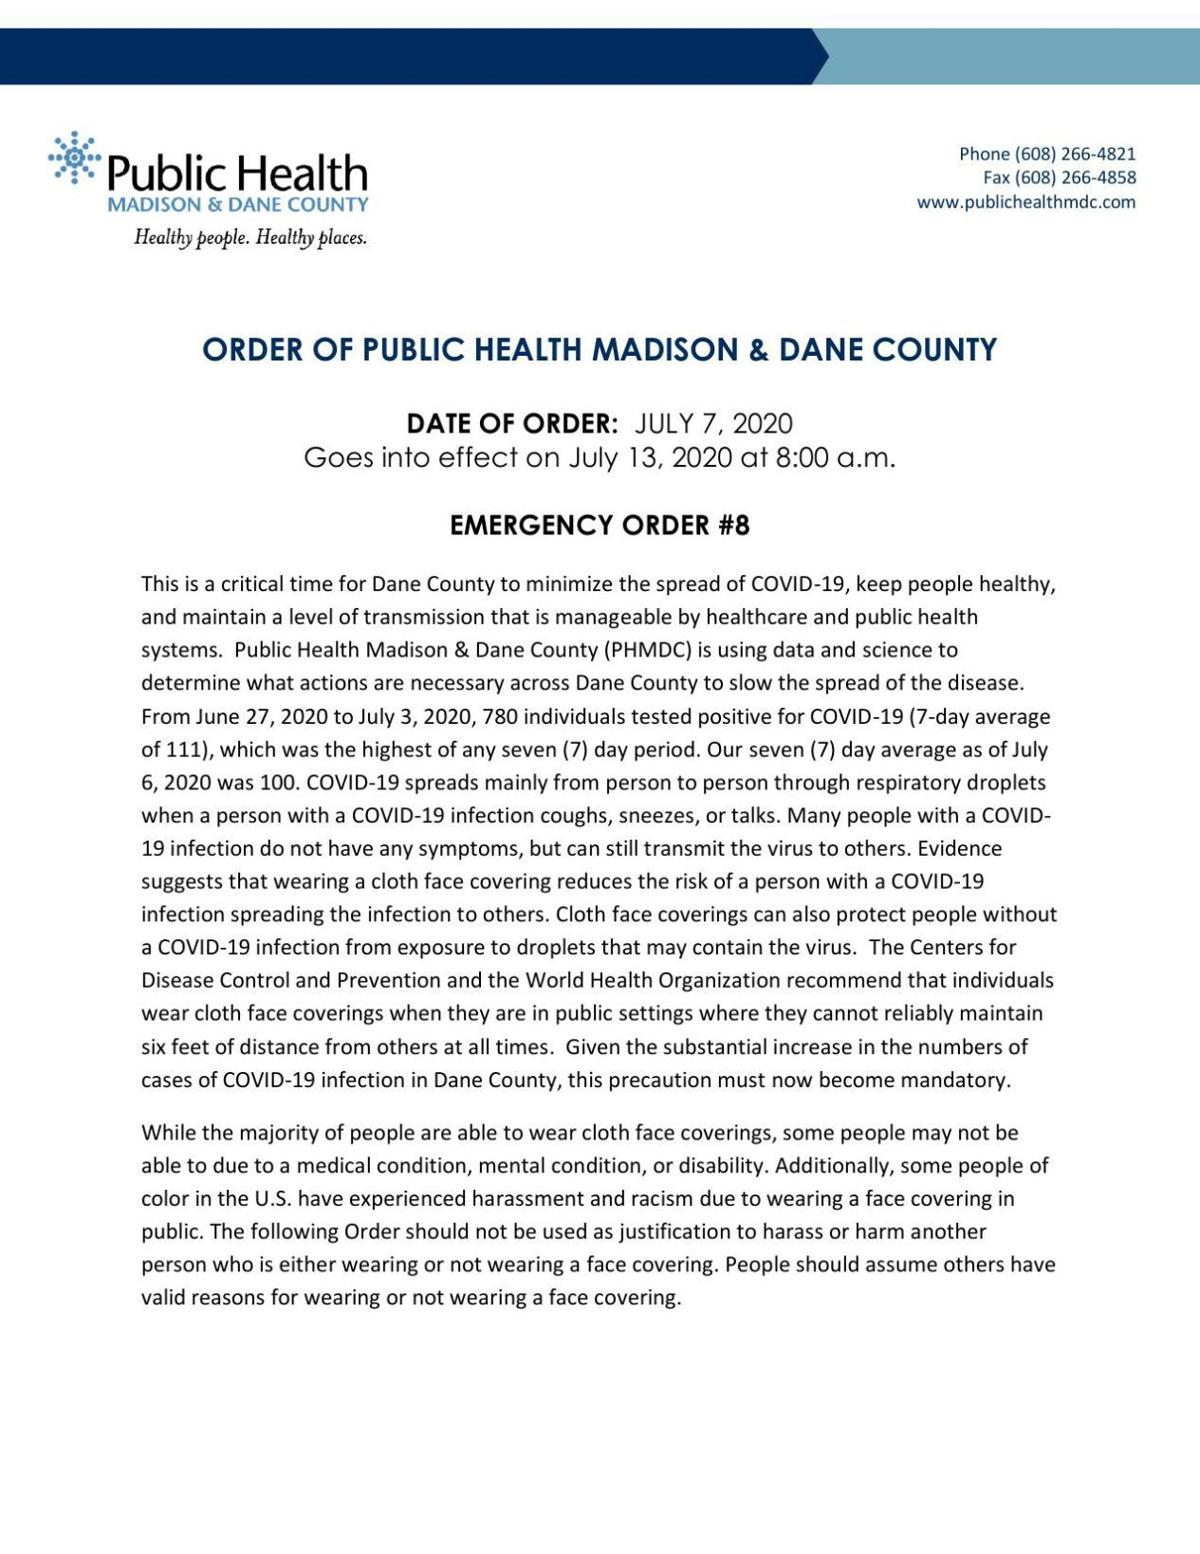 Read Dane County's mask order